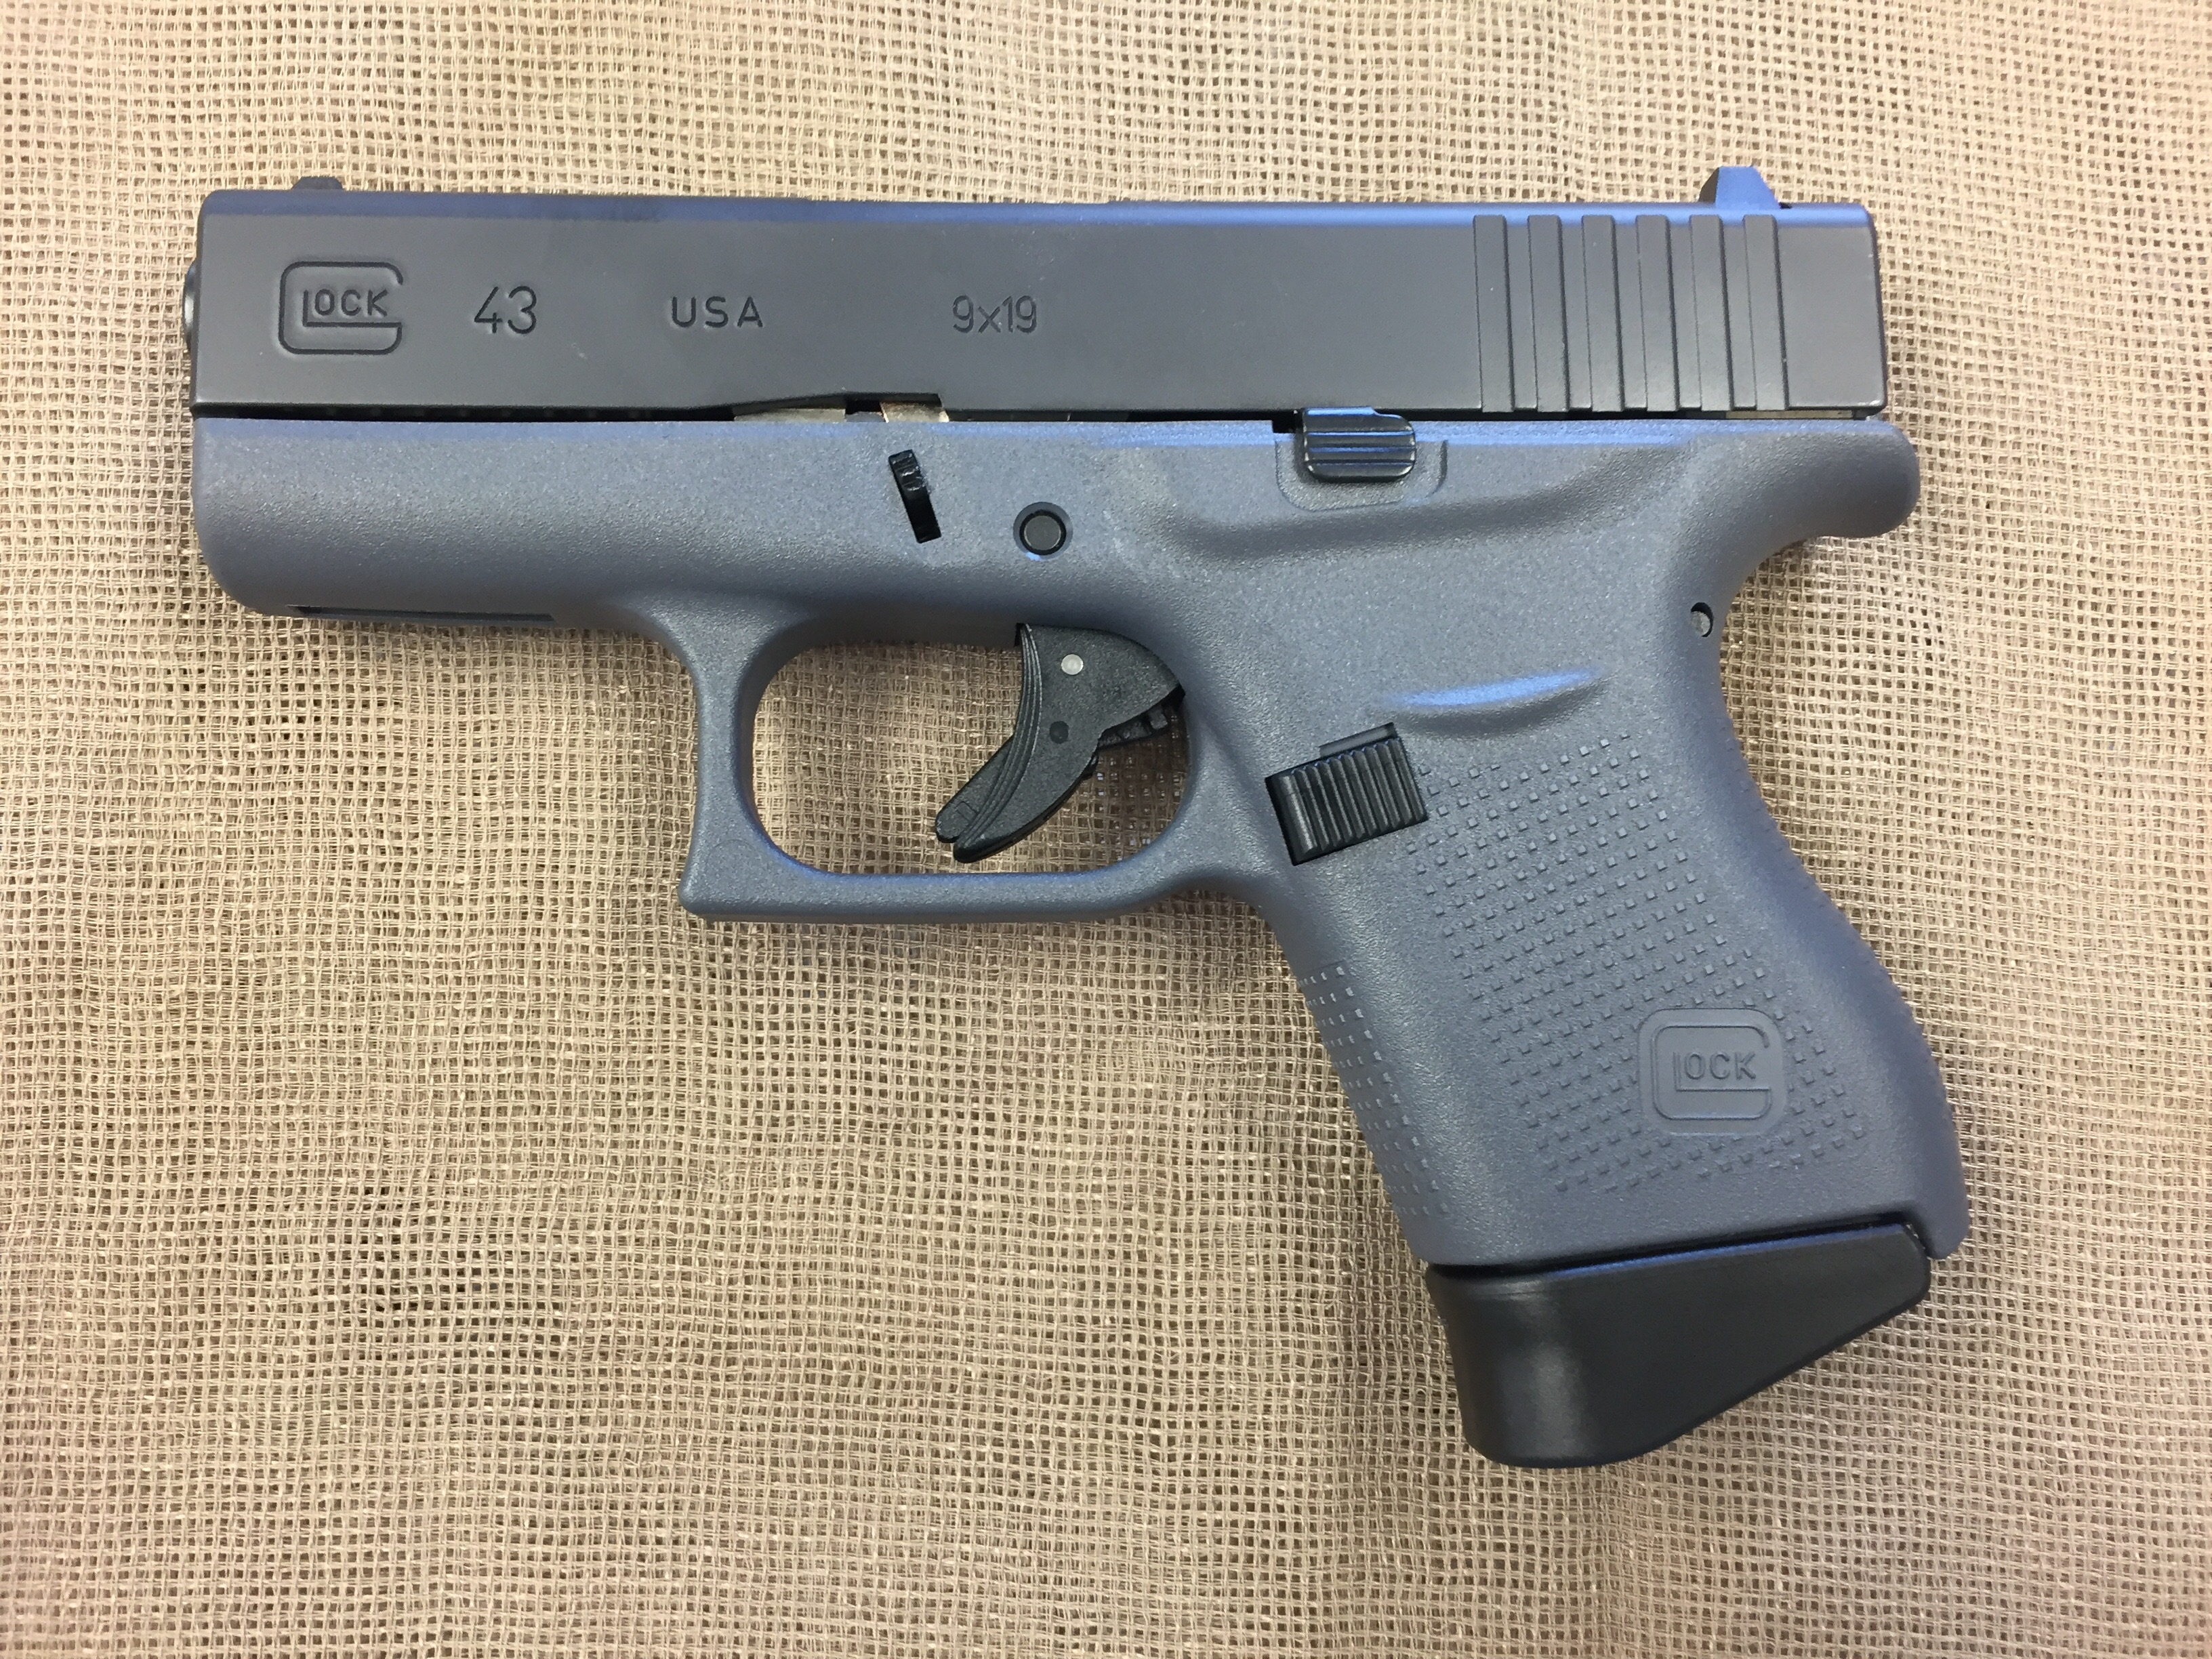 Glock 43 9mm subcompact gray frame – Saddle Rock Armory